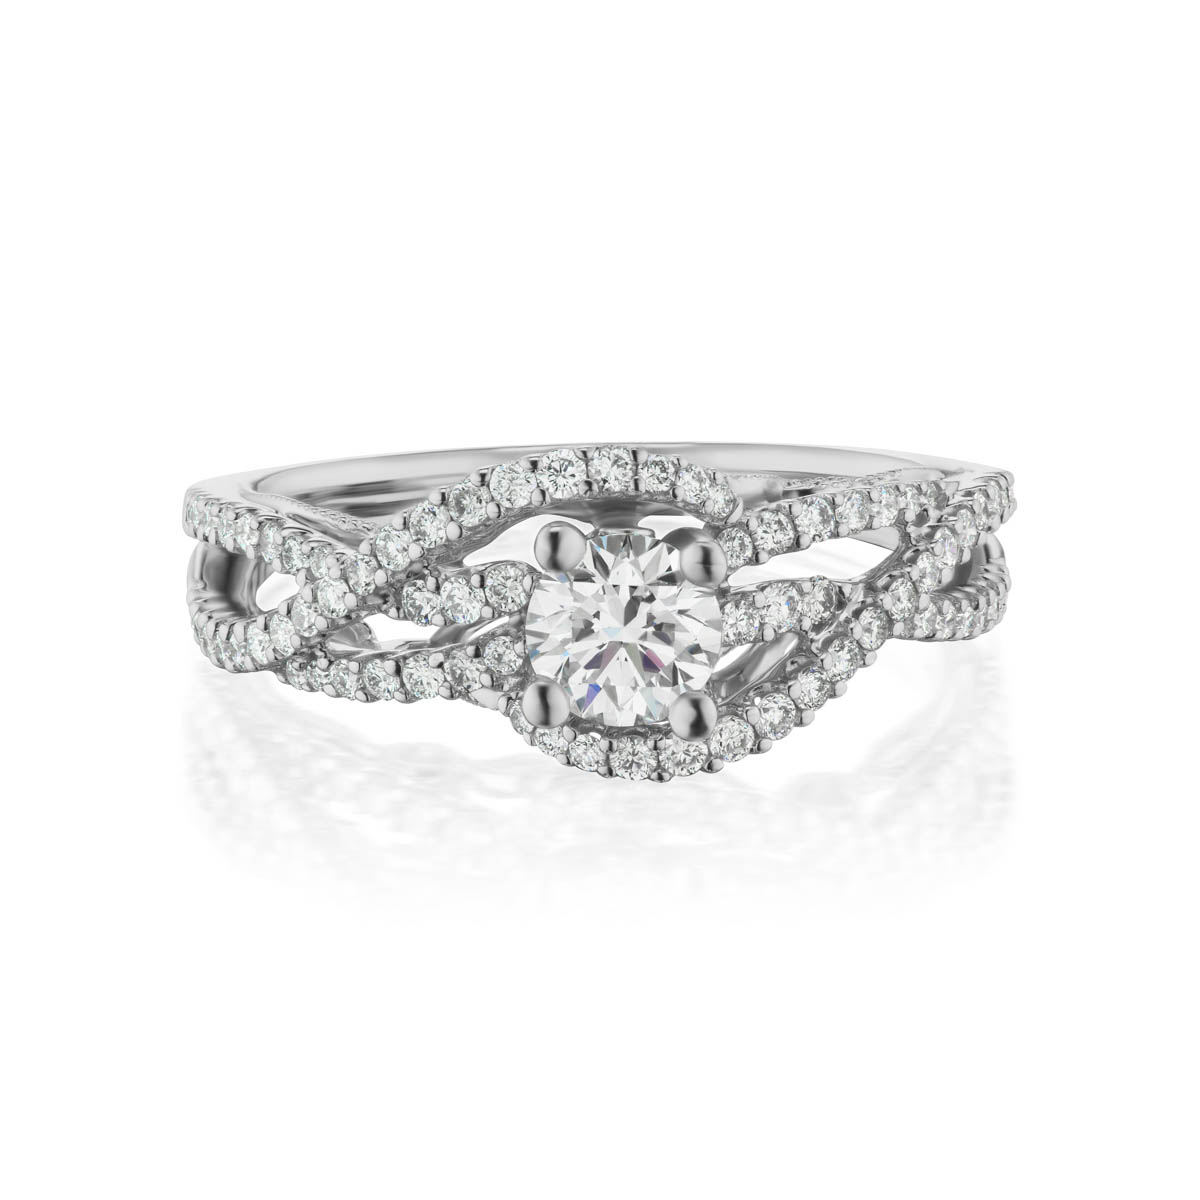 Valia Diamond Ring; 14 kt white gold